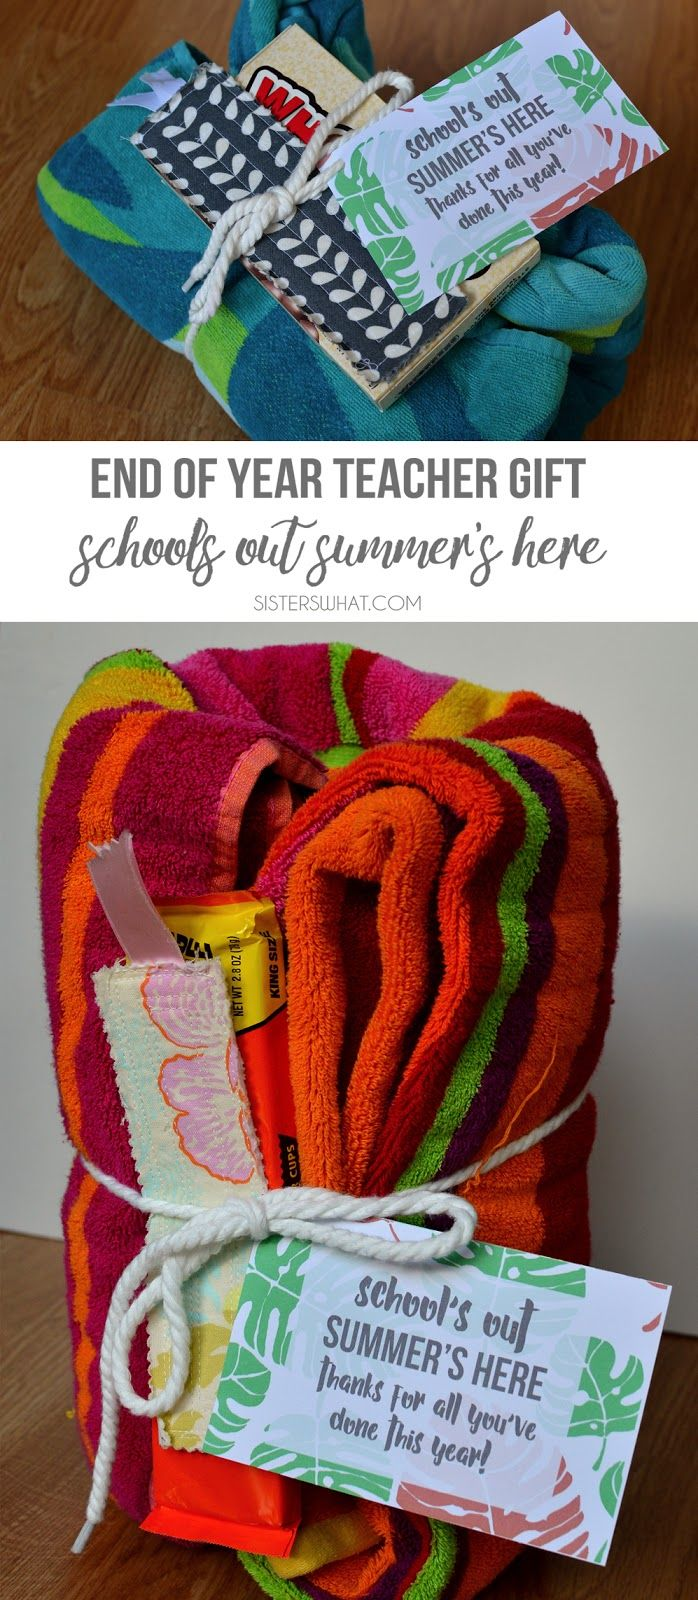 End of the Year Teacher Gift Ideas | Pinterest